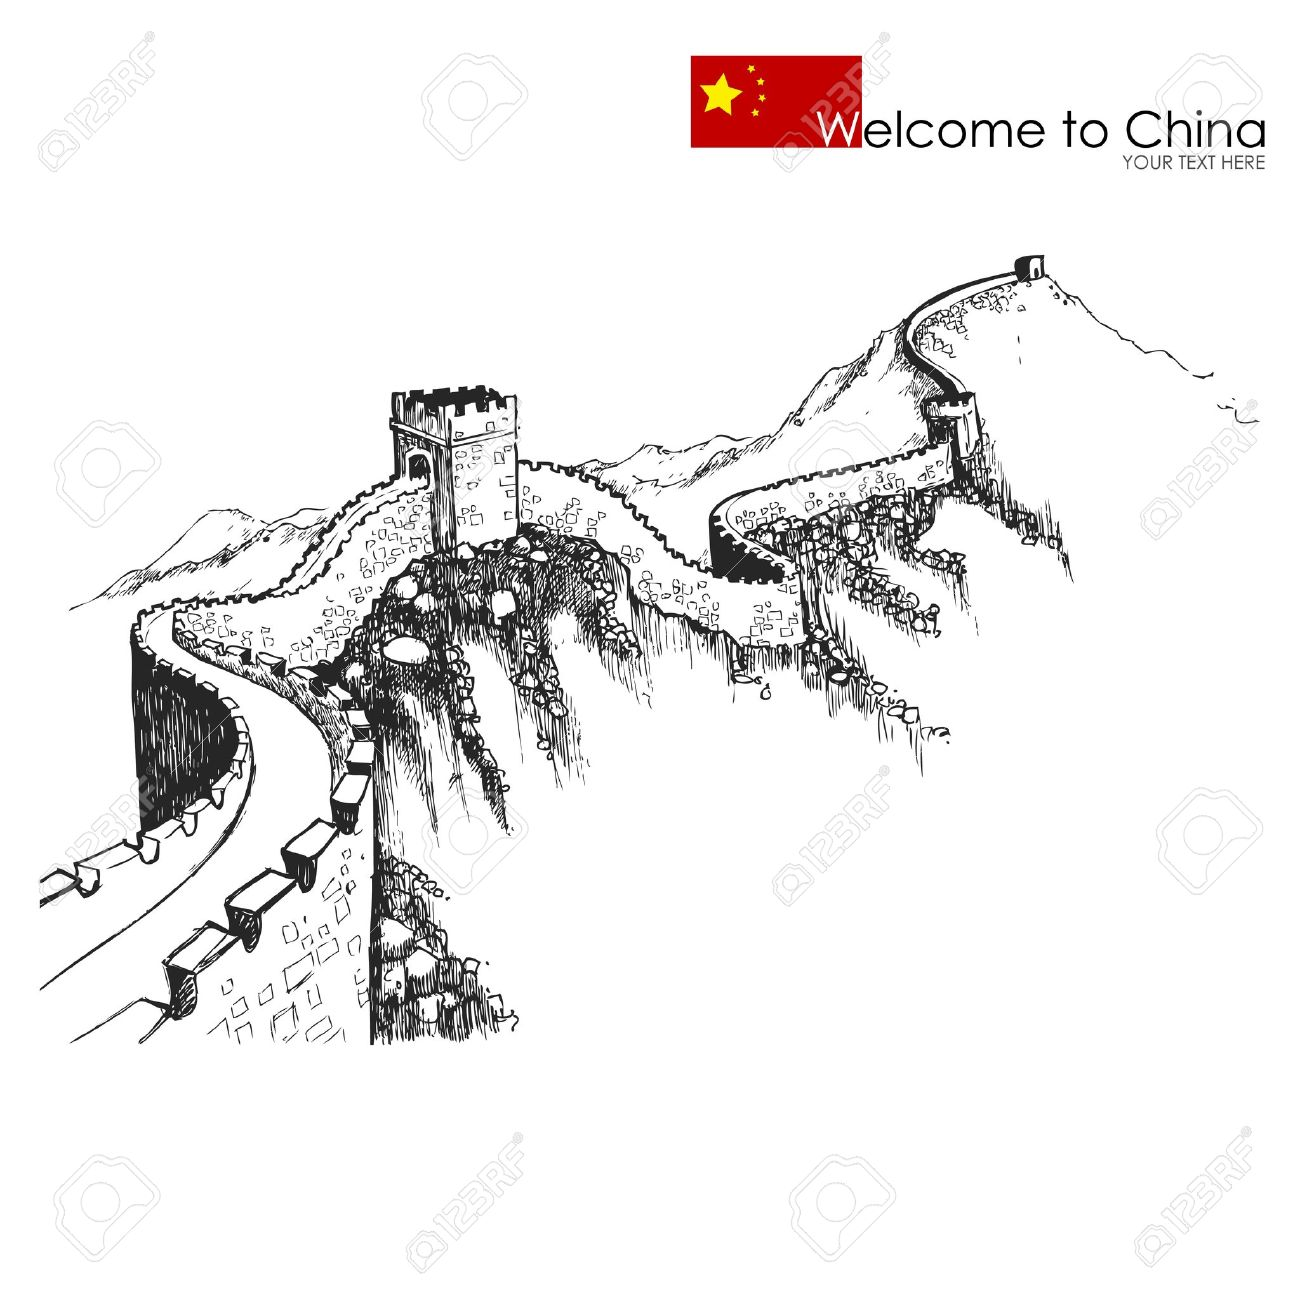 565 great wall of china stock illustrations cliparts and royalty